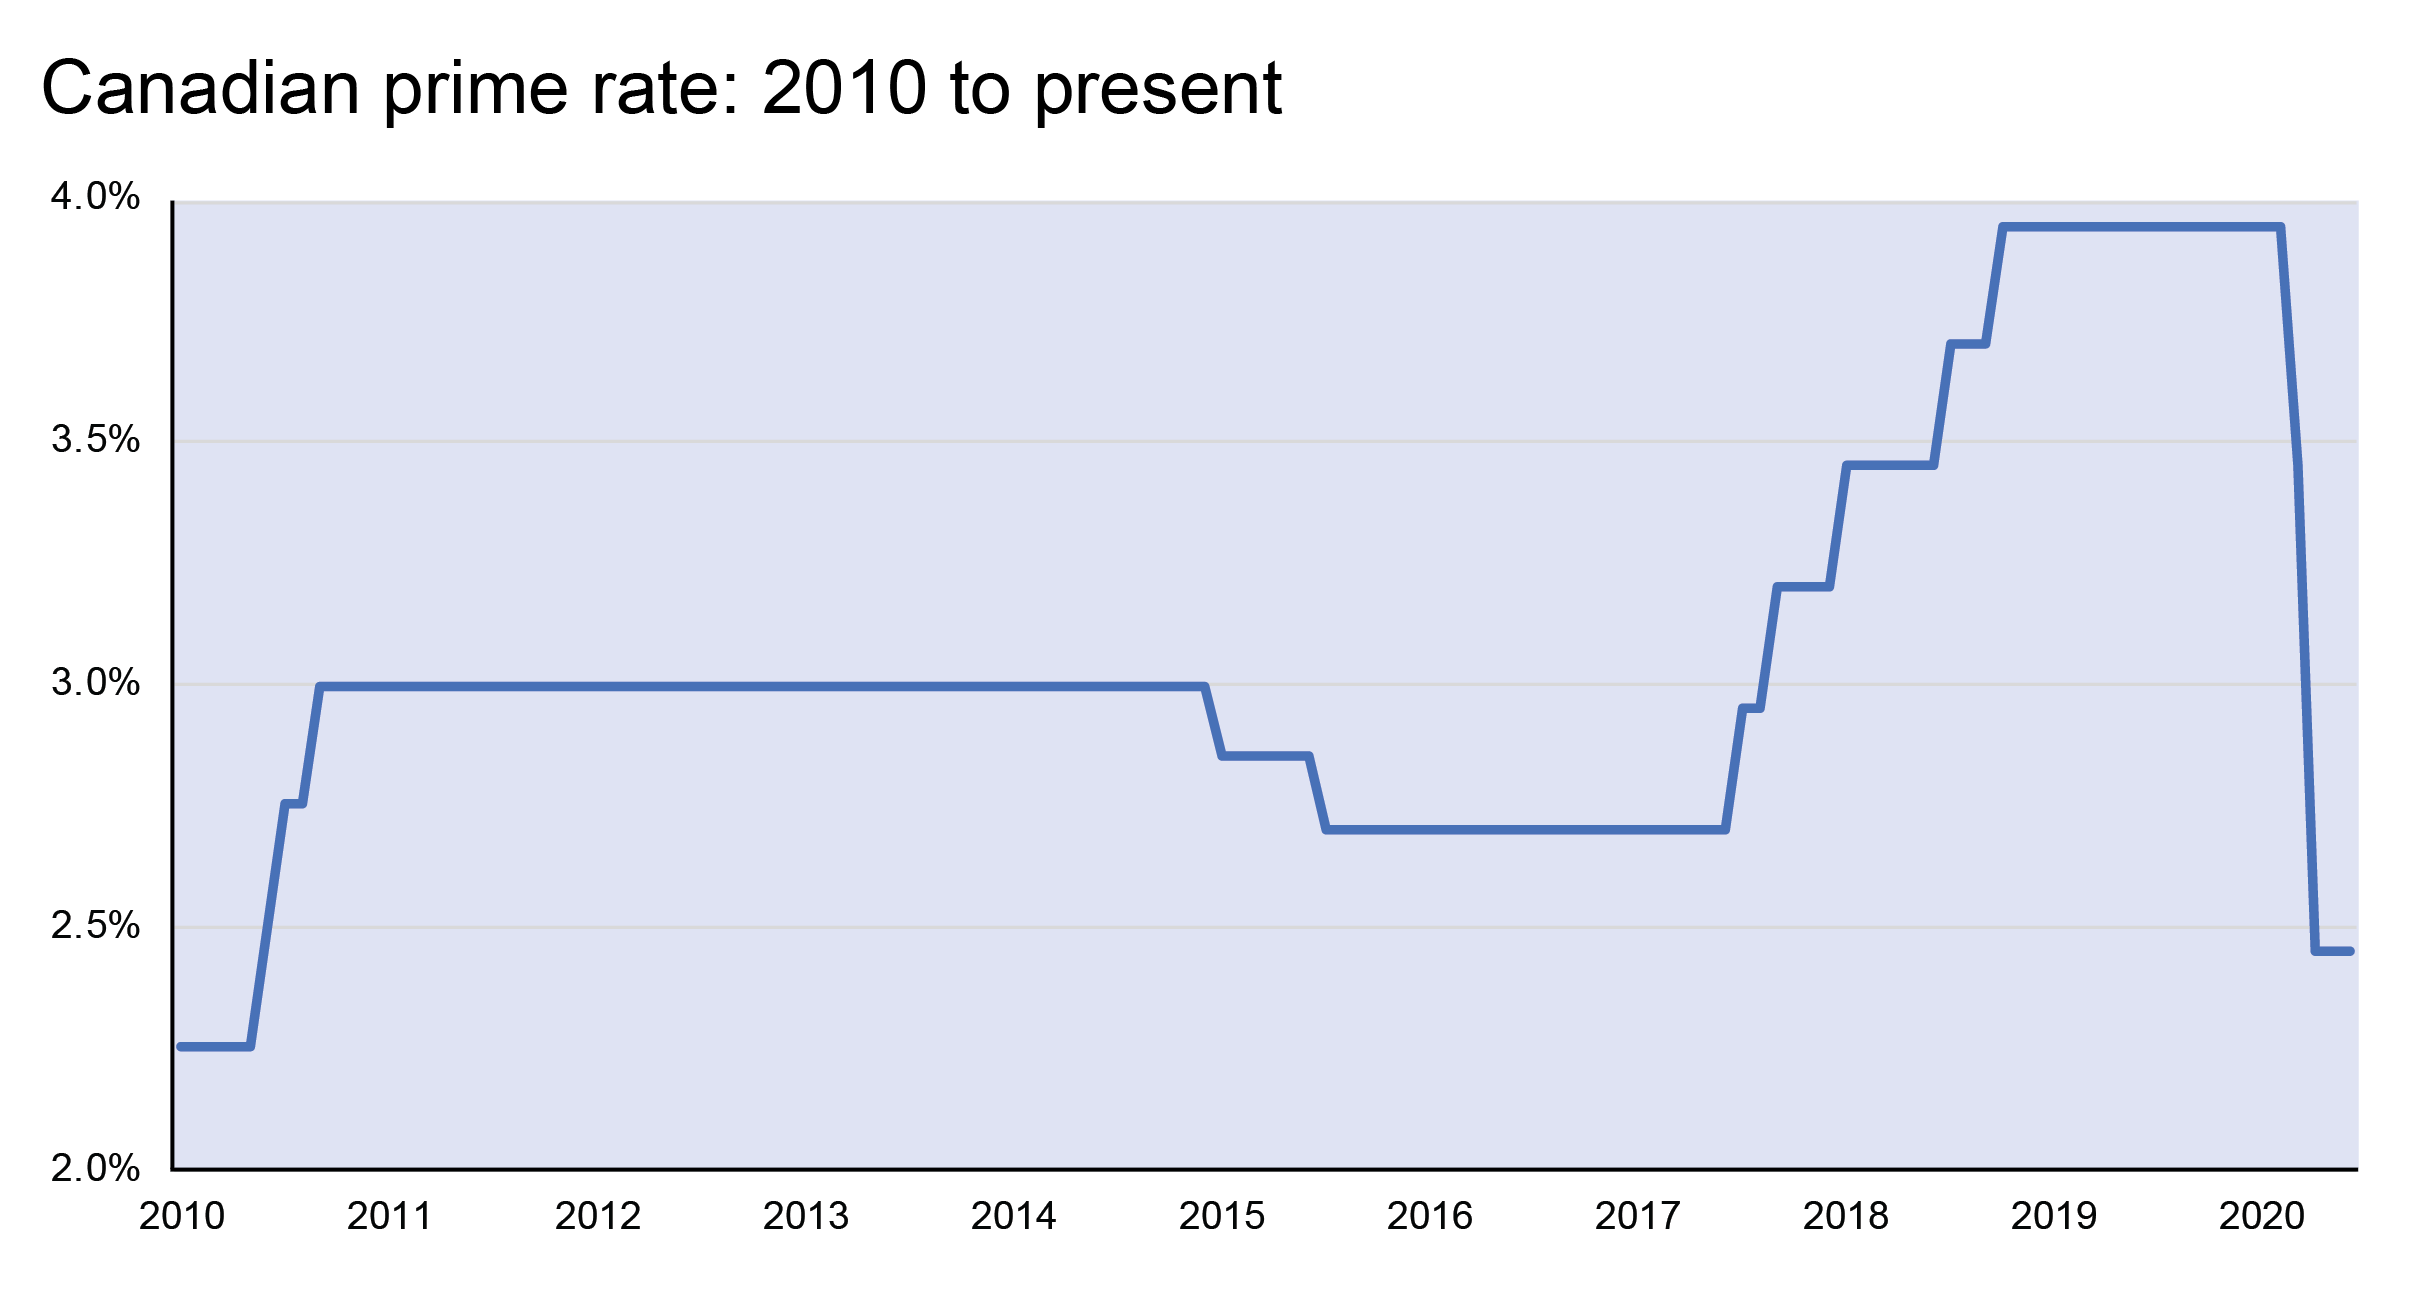 Line graph of Canadian prime rate from 2010 to the present